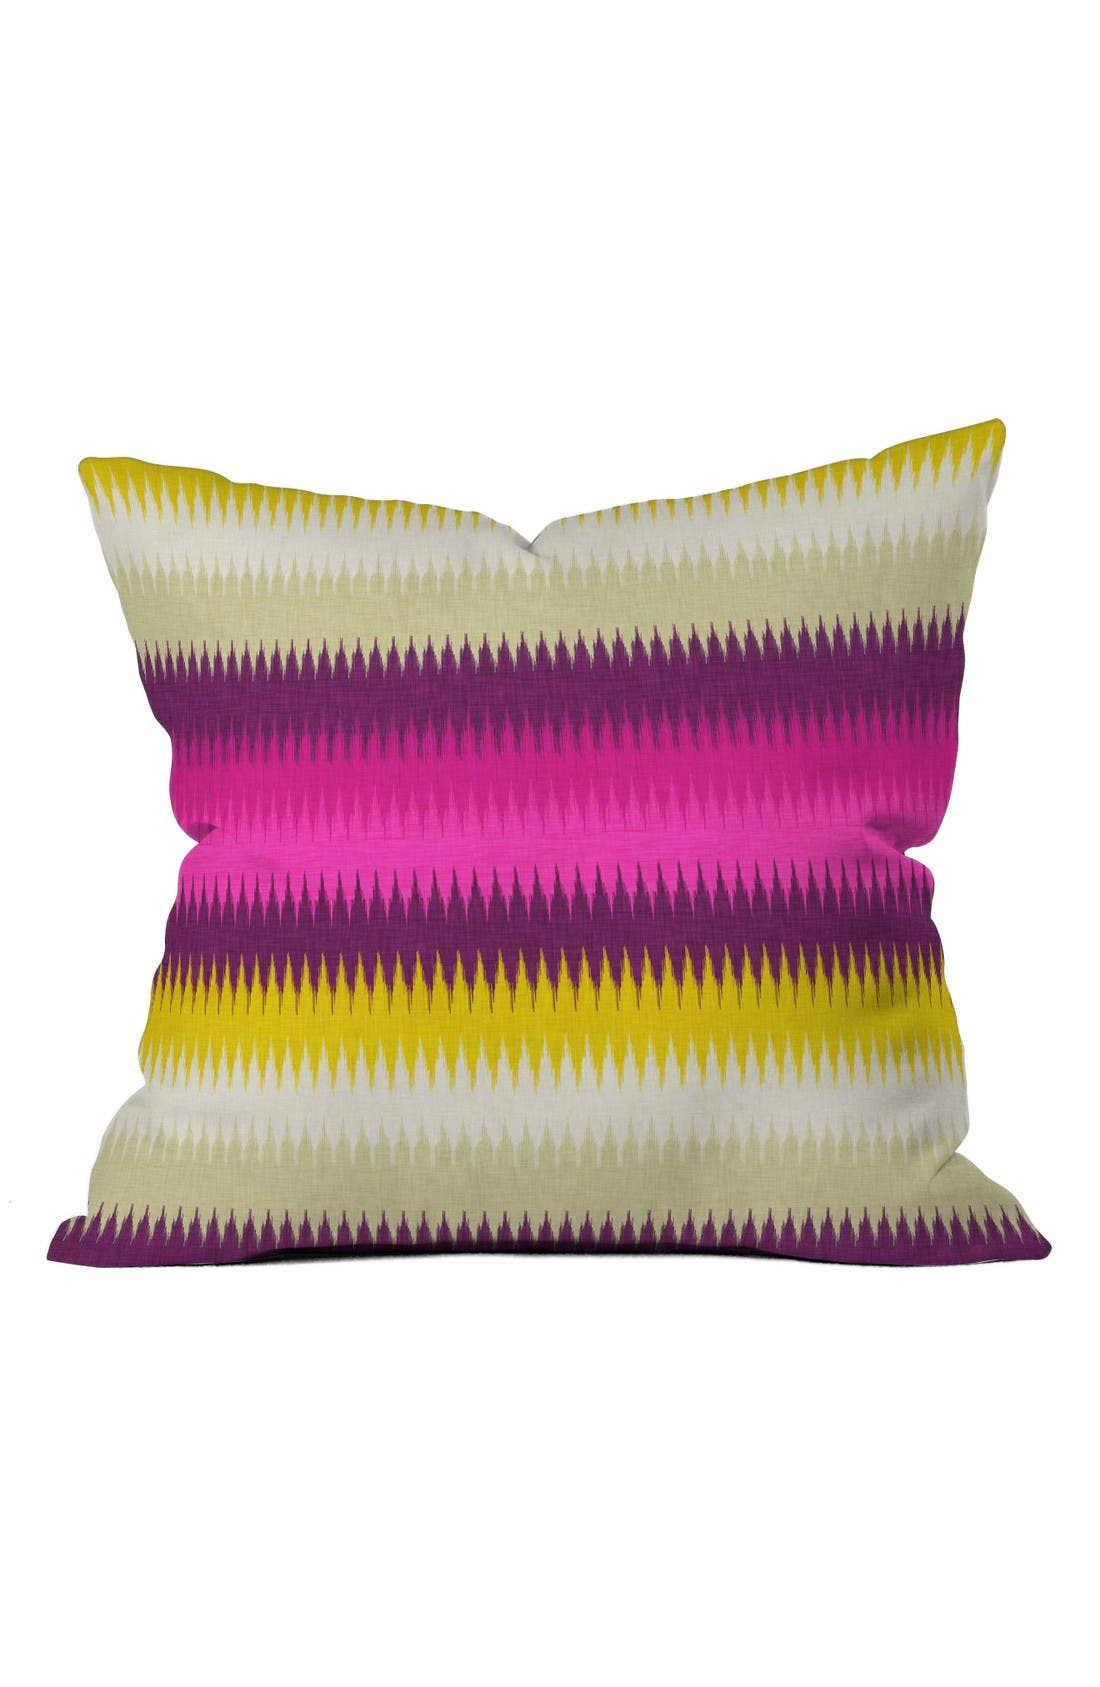 Main Image - Deny Designs Bright Stripe Pillow